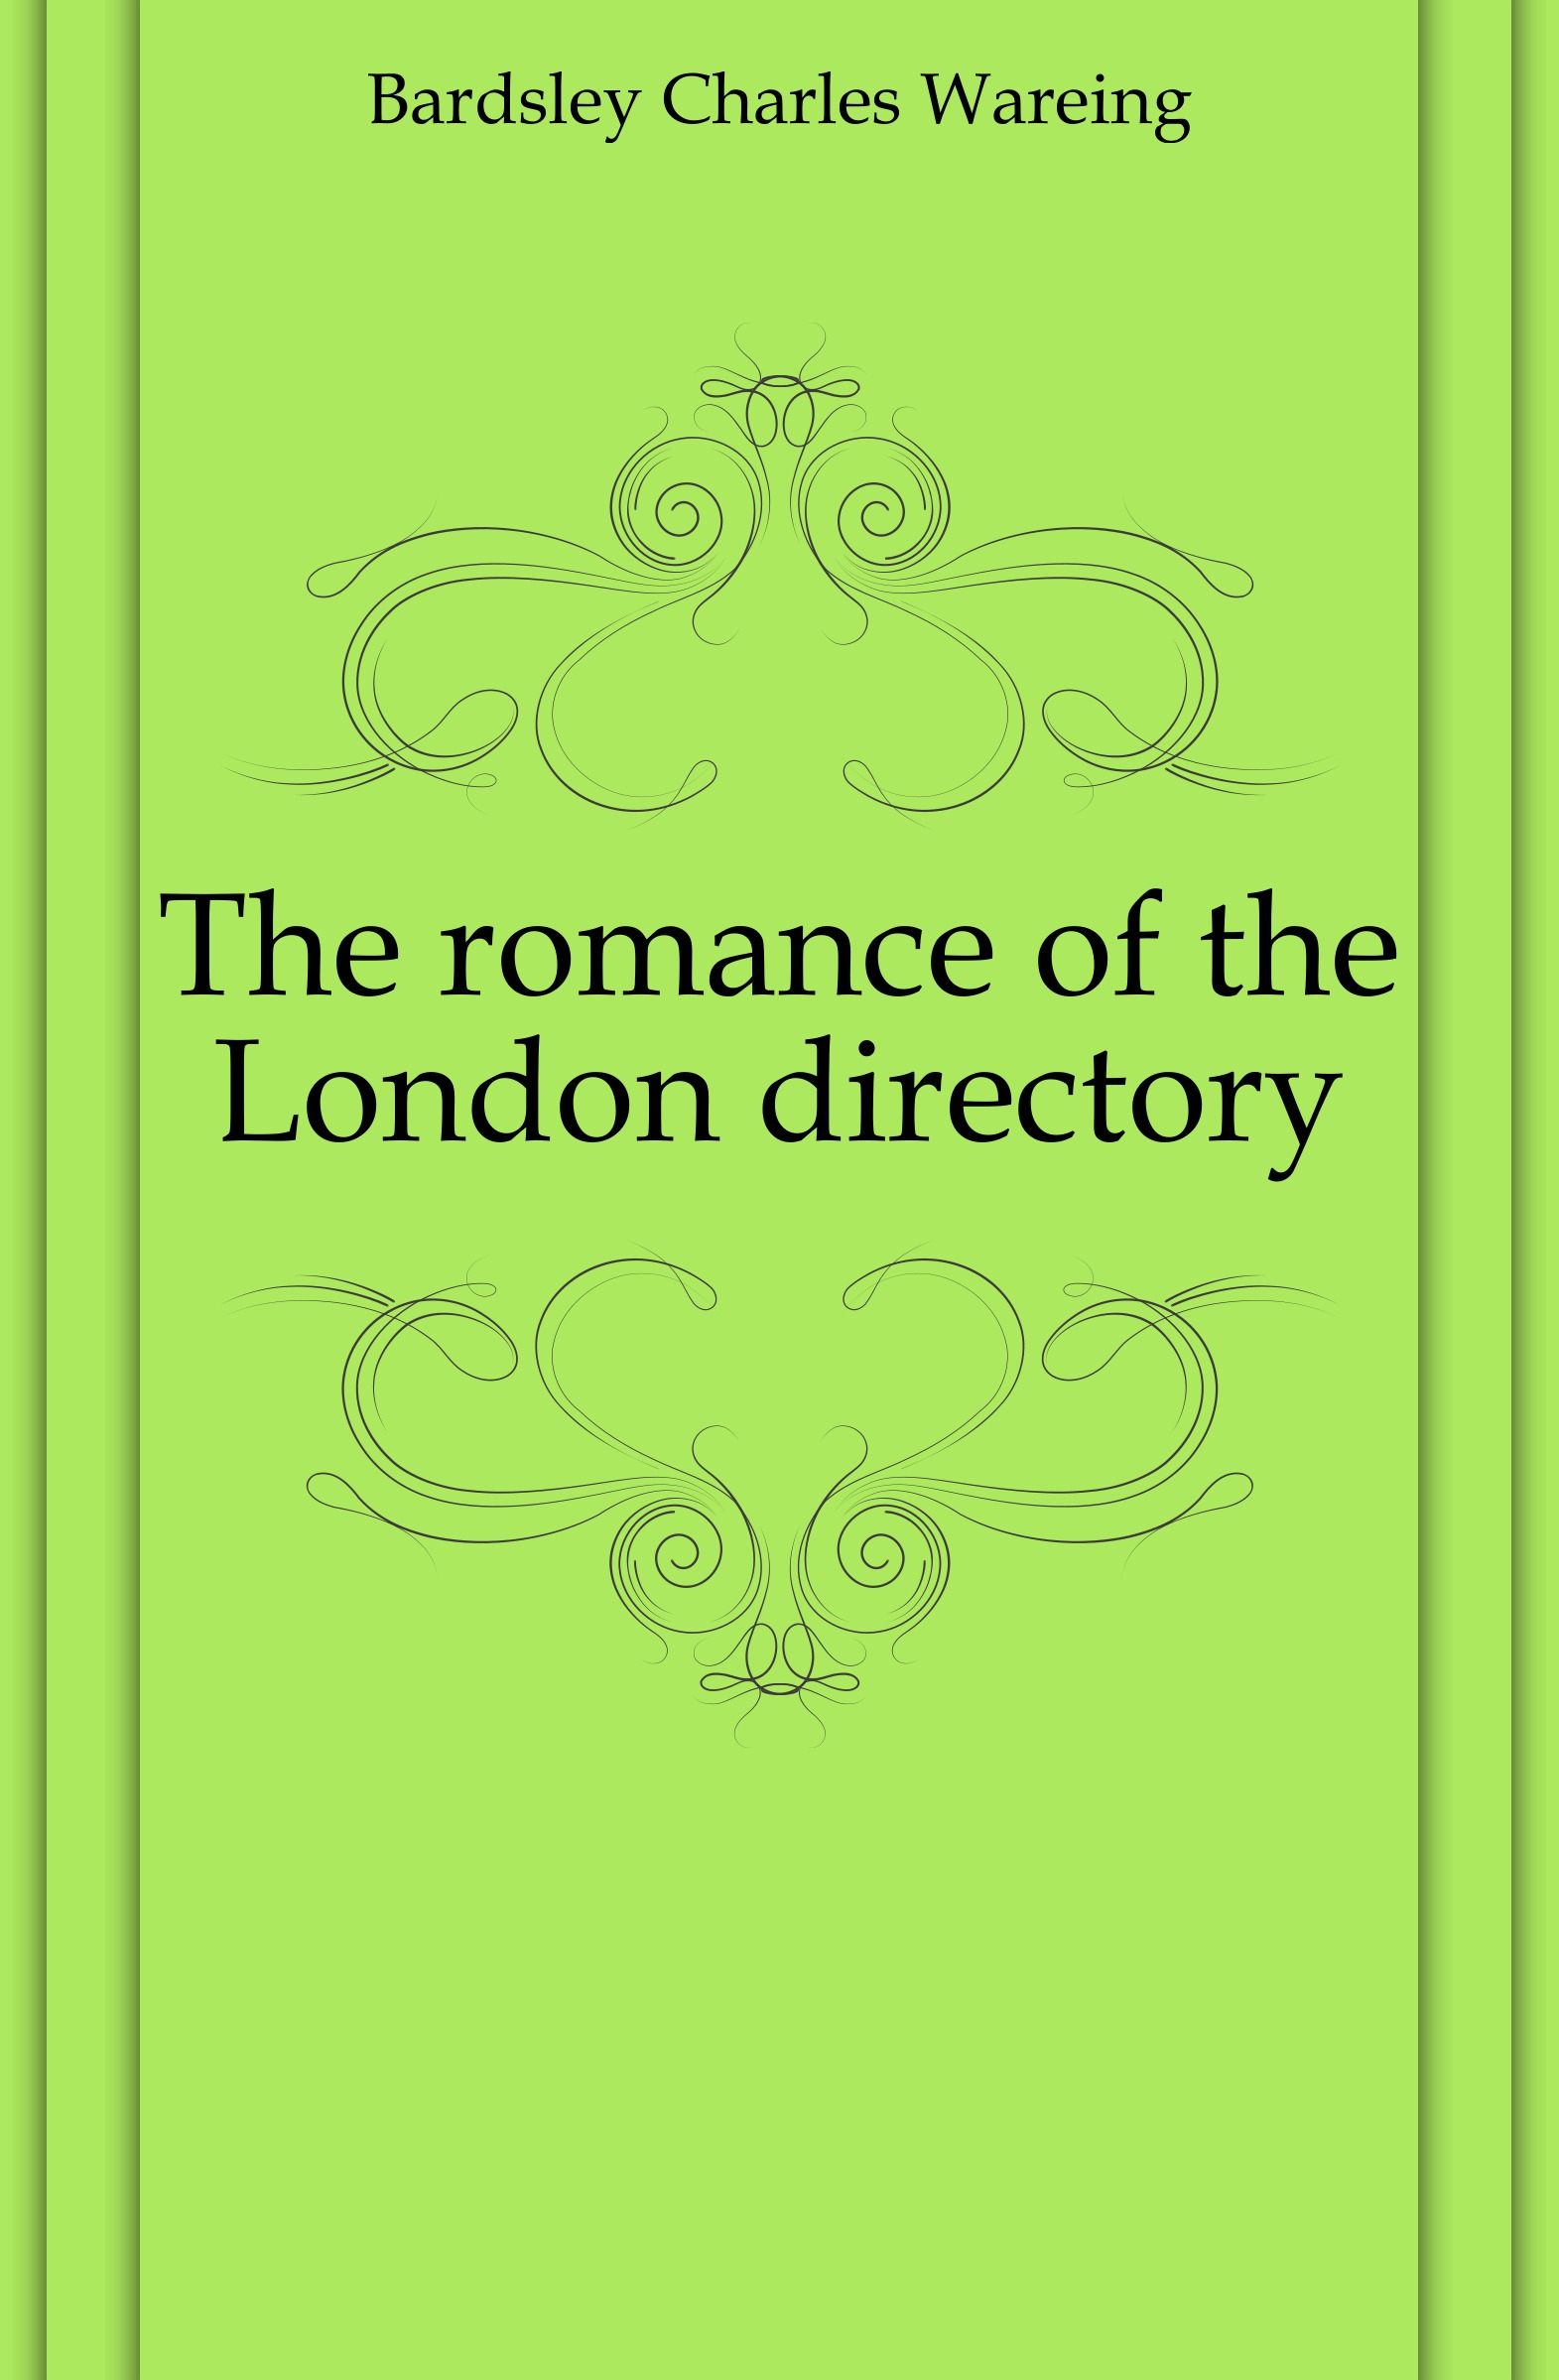 Bardsley Charles Wareing The romance of the London directory the london directory